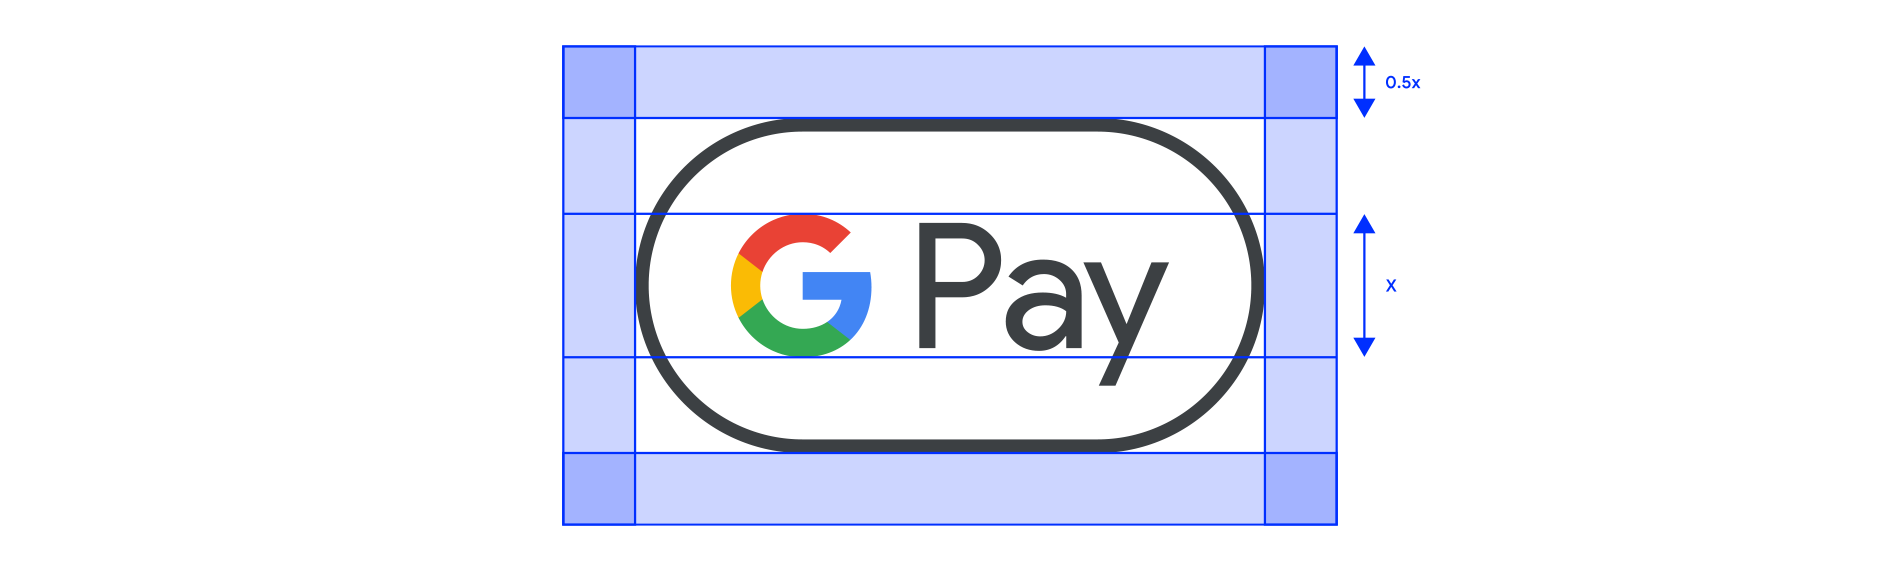 Google Pay mark clear space example